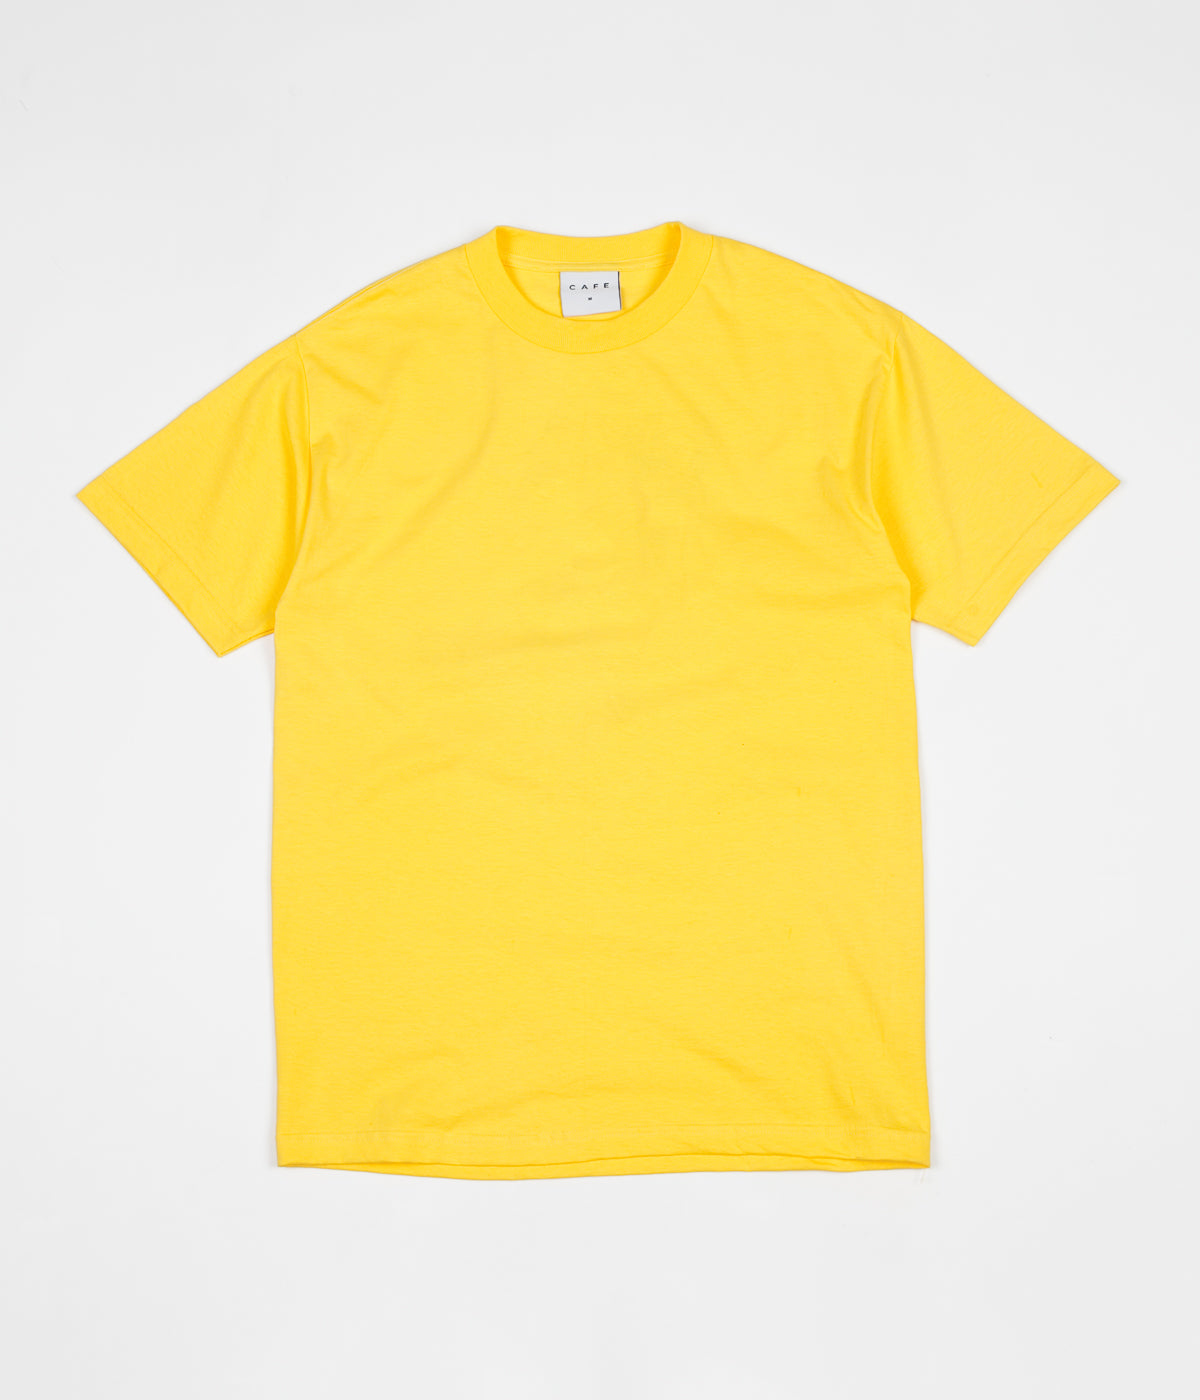 Skateboard Cafe Dancers T-Shirt - Gold